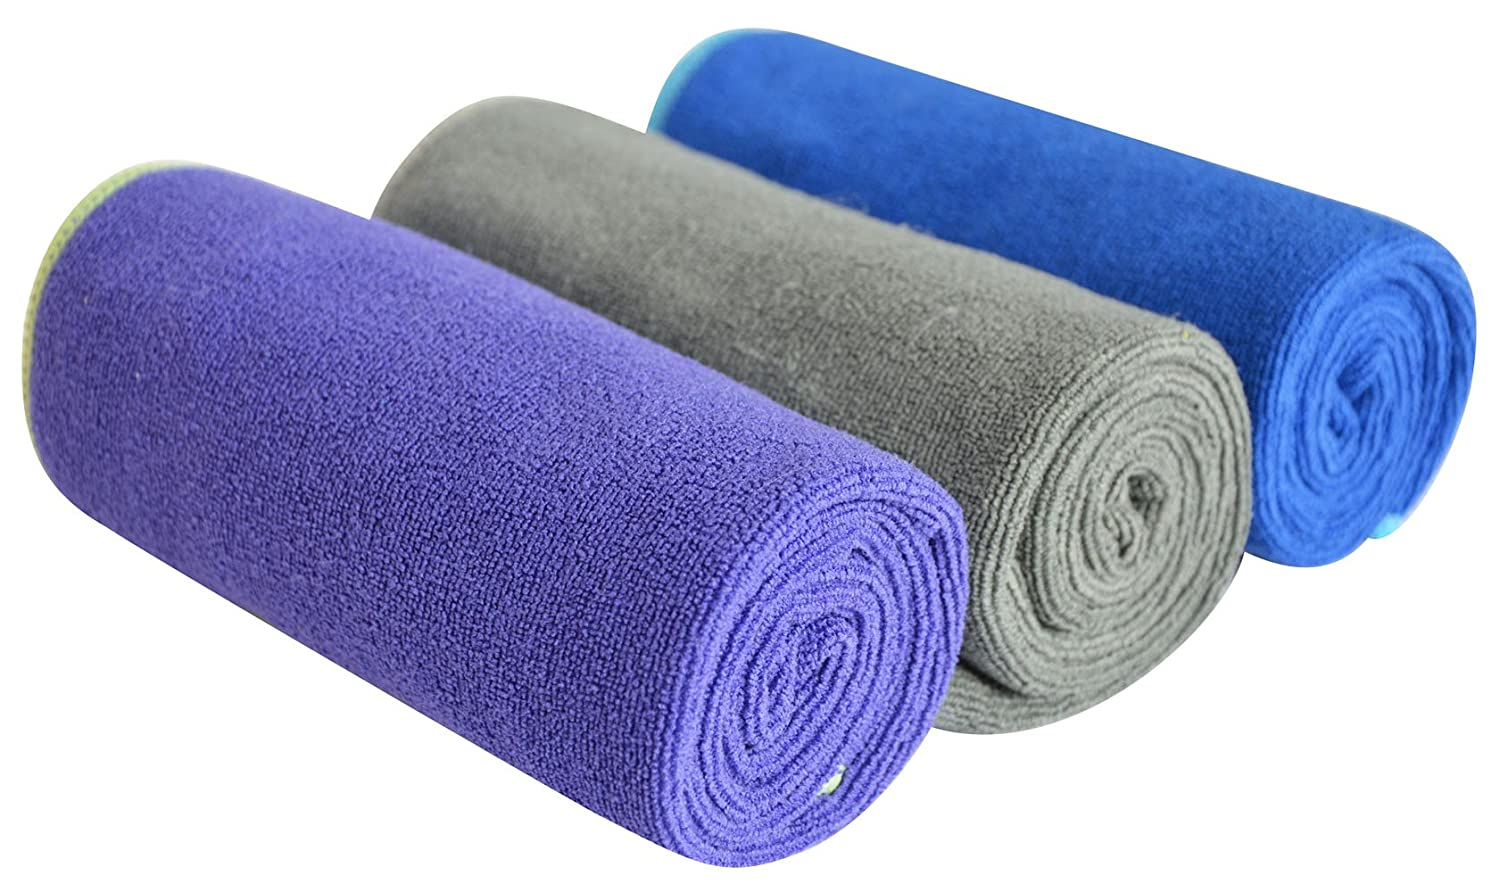 Sinland Microfiber Absorbent and Fast Drying Gym Towels 3 Pack 13 Inch X 29 Inch